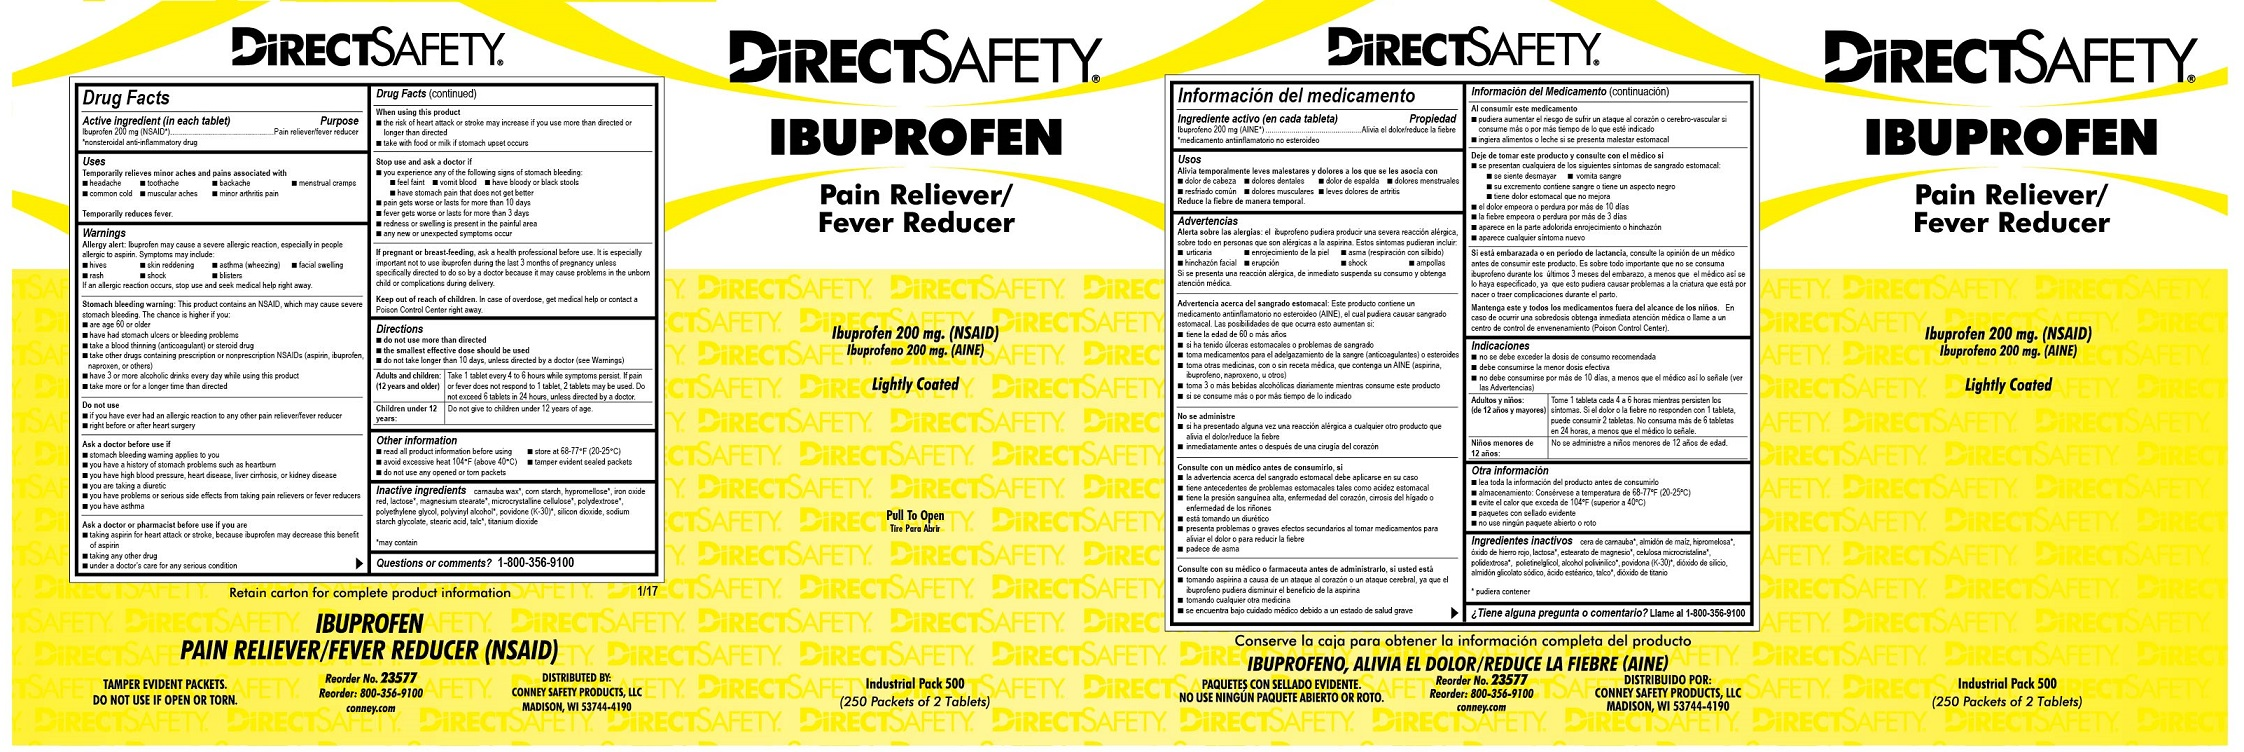 Direct safety Ibuprofen